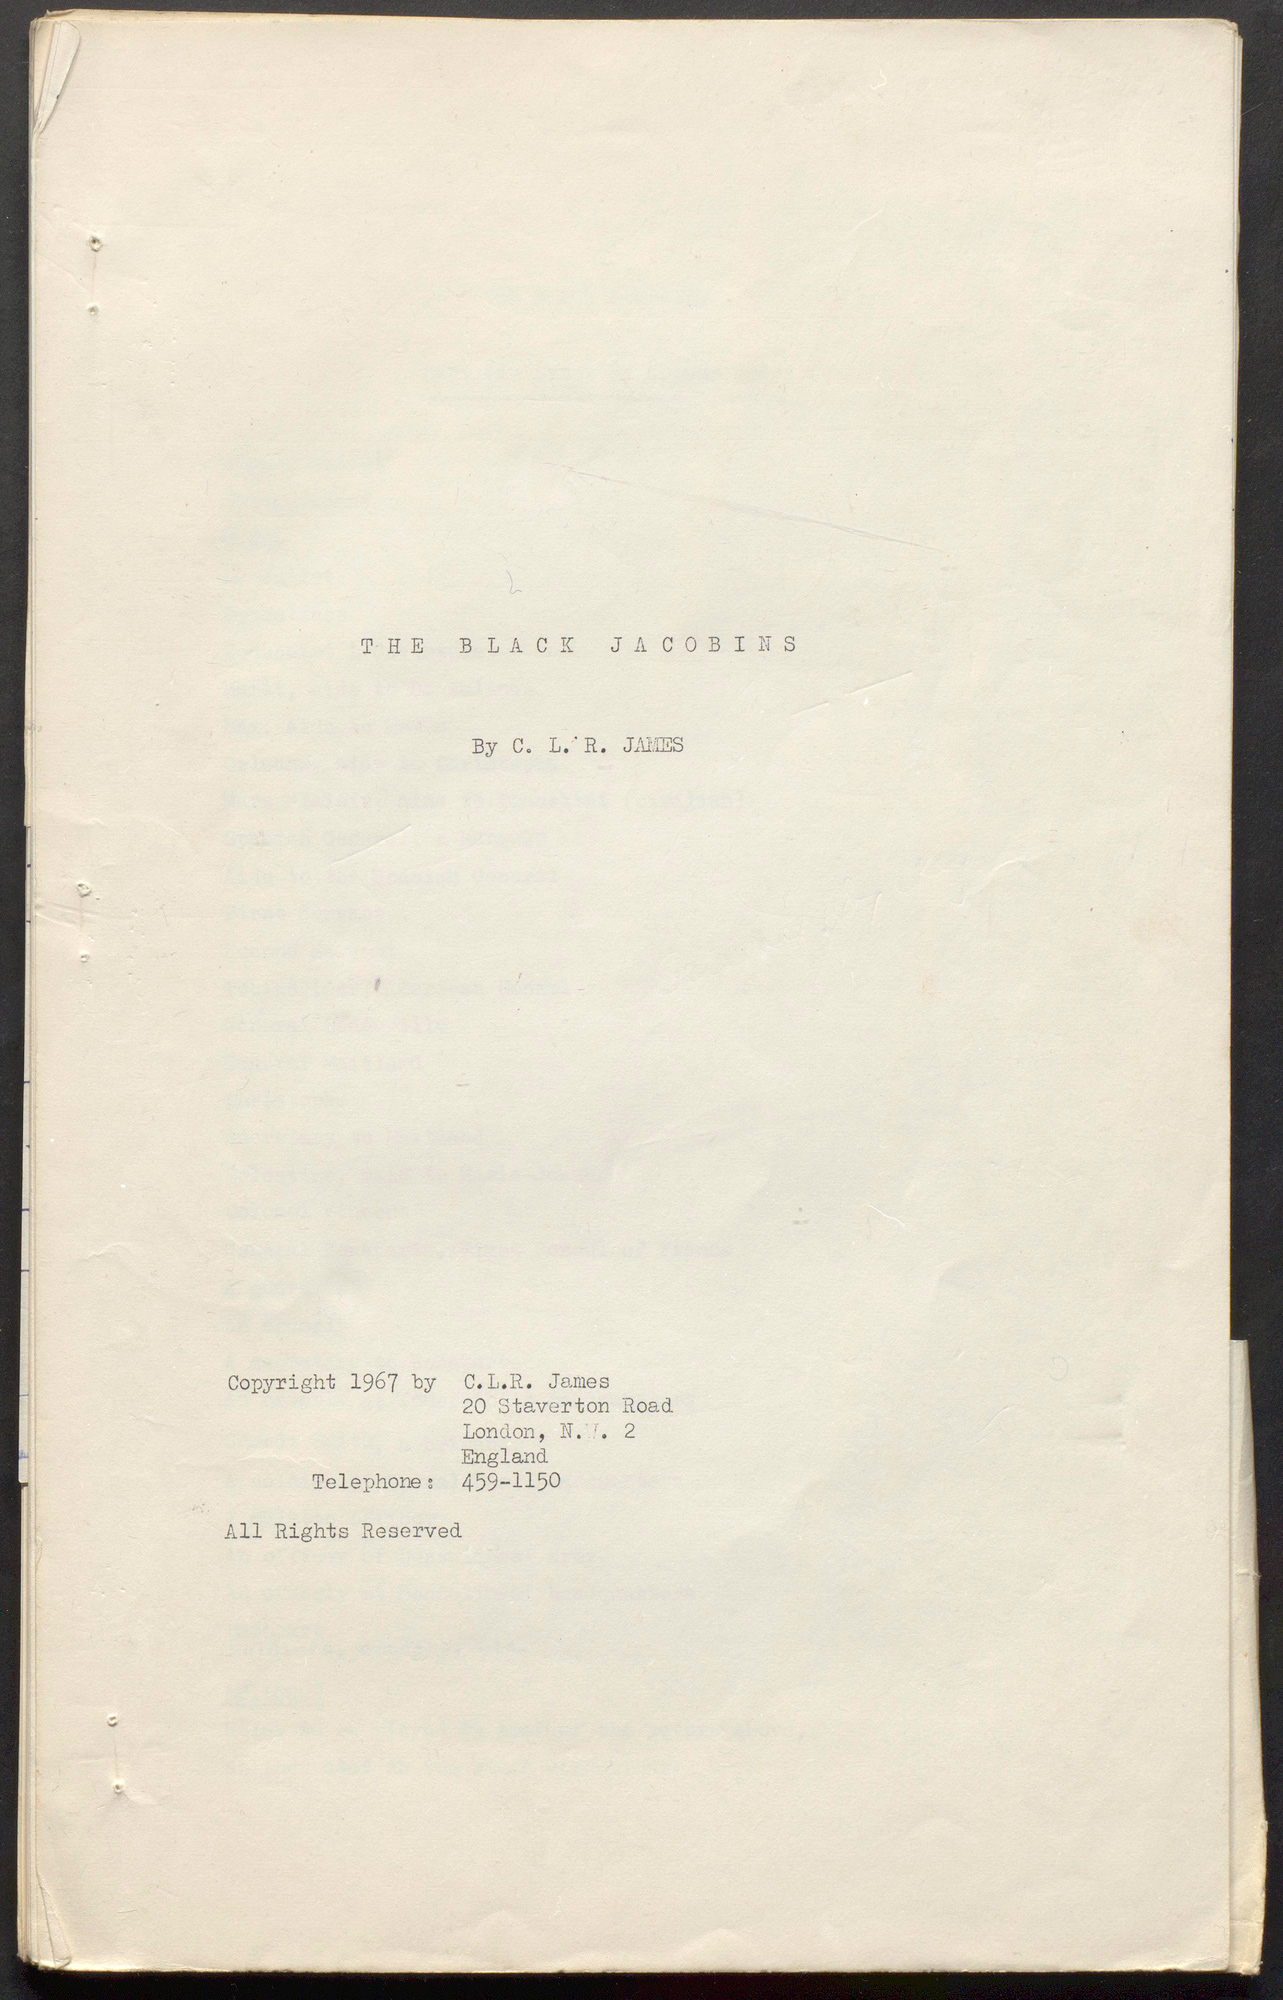 Typescript of The Black Jacobins play by C L R James, 1967